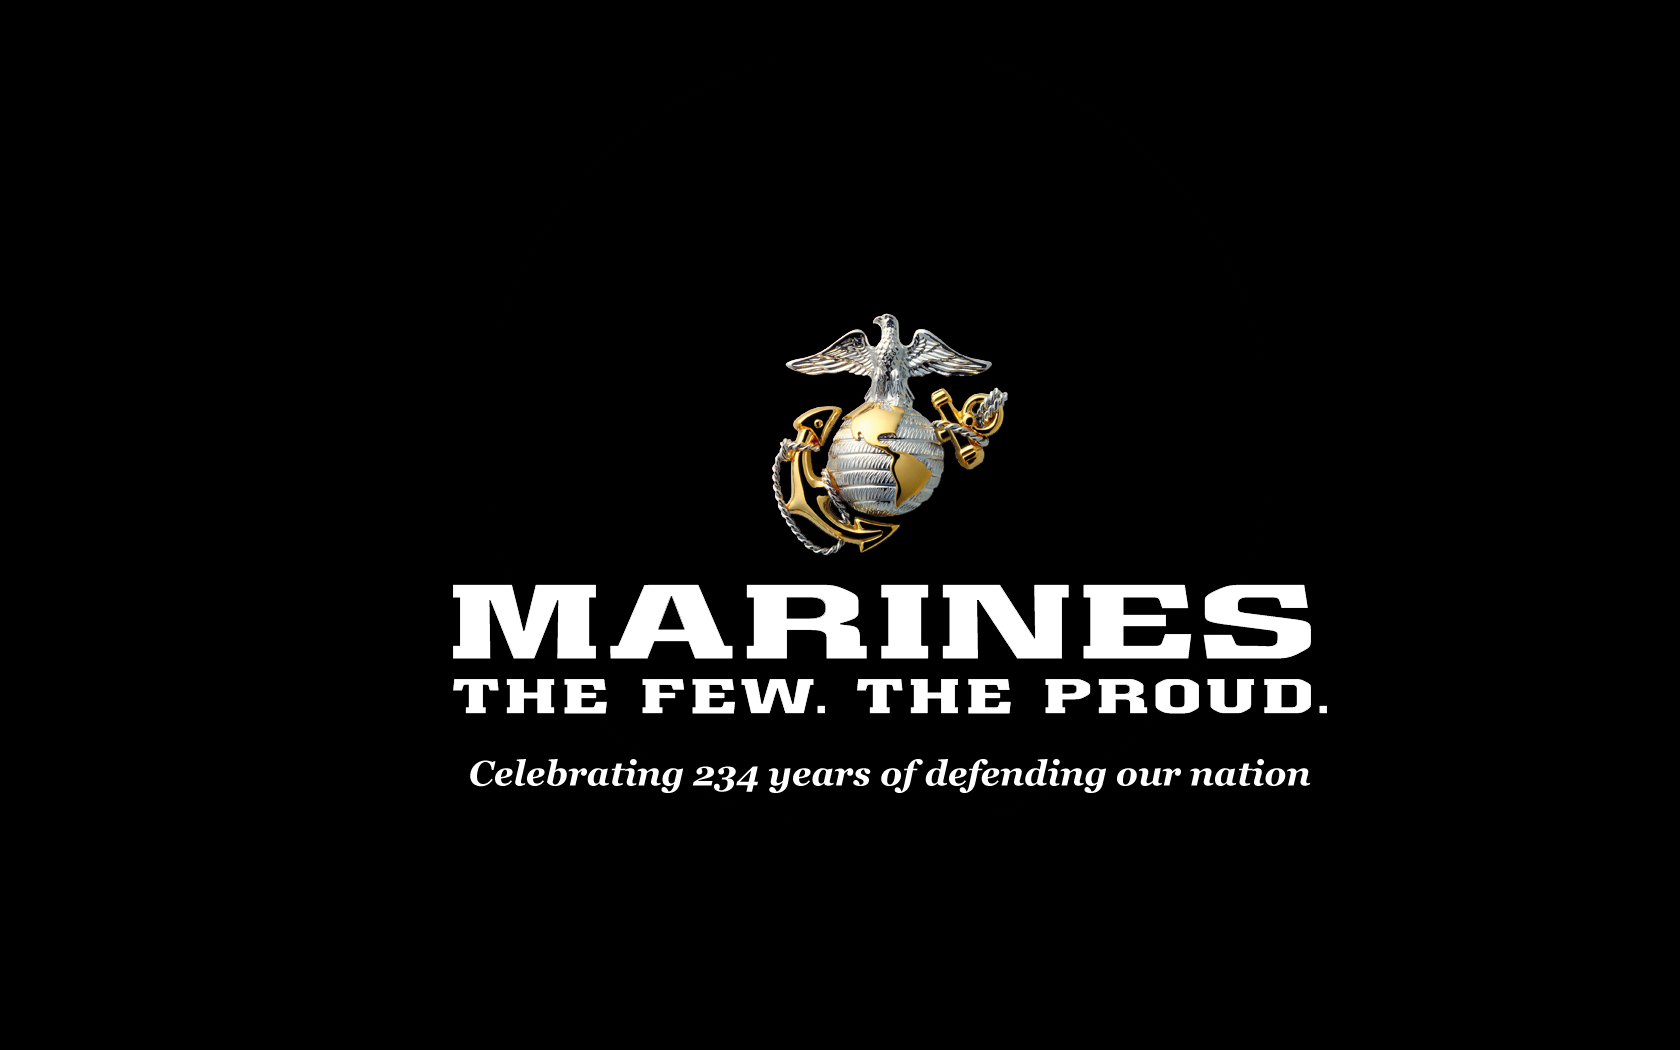 June 3, 2014 - 1680x1050 px Marines Desktop Wallpapers